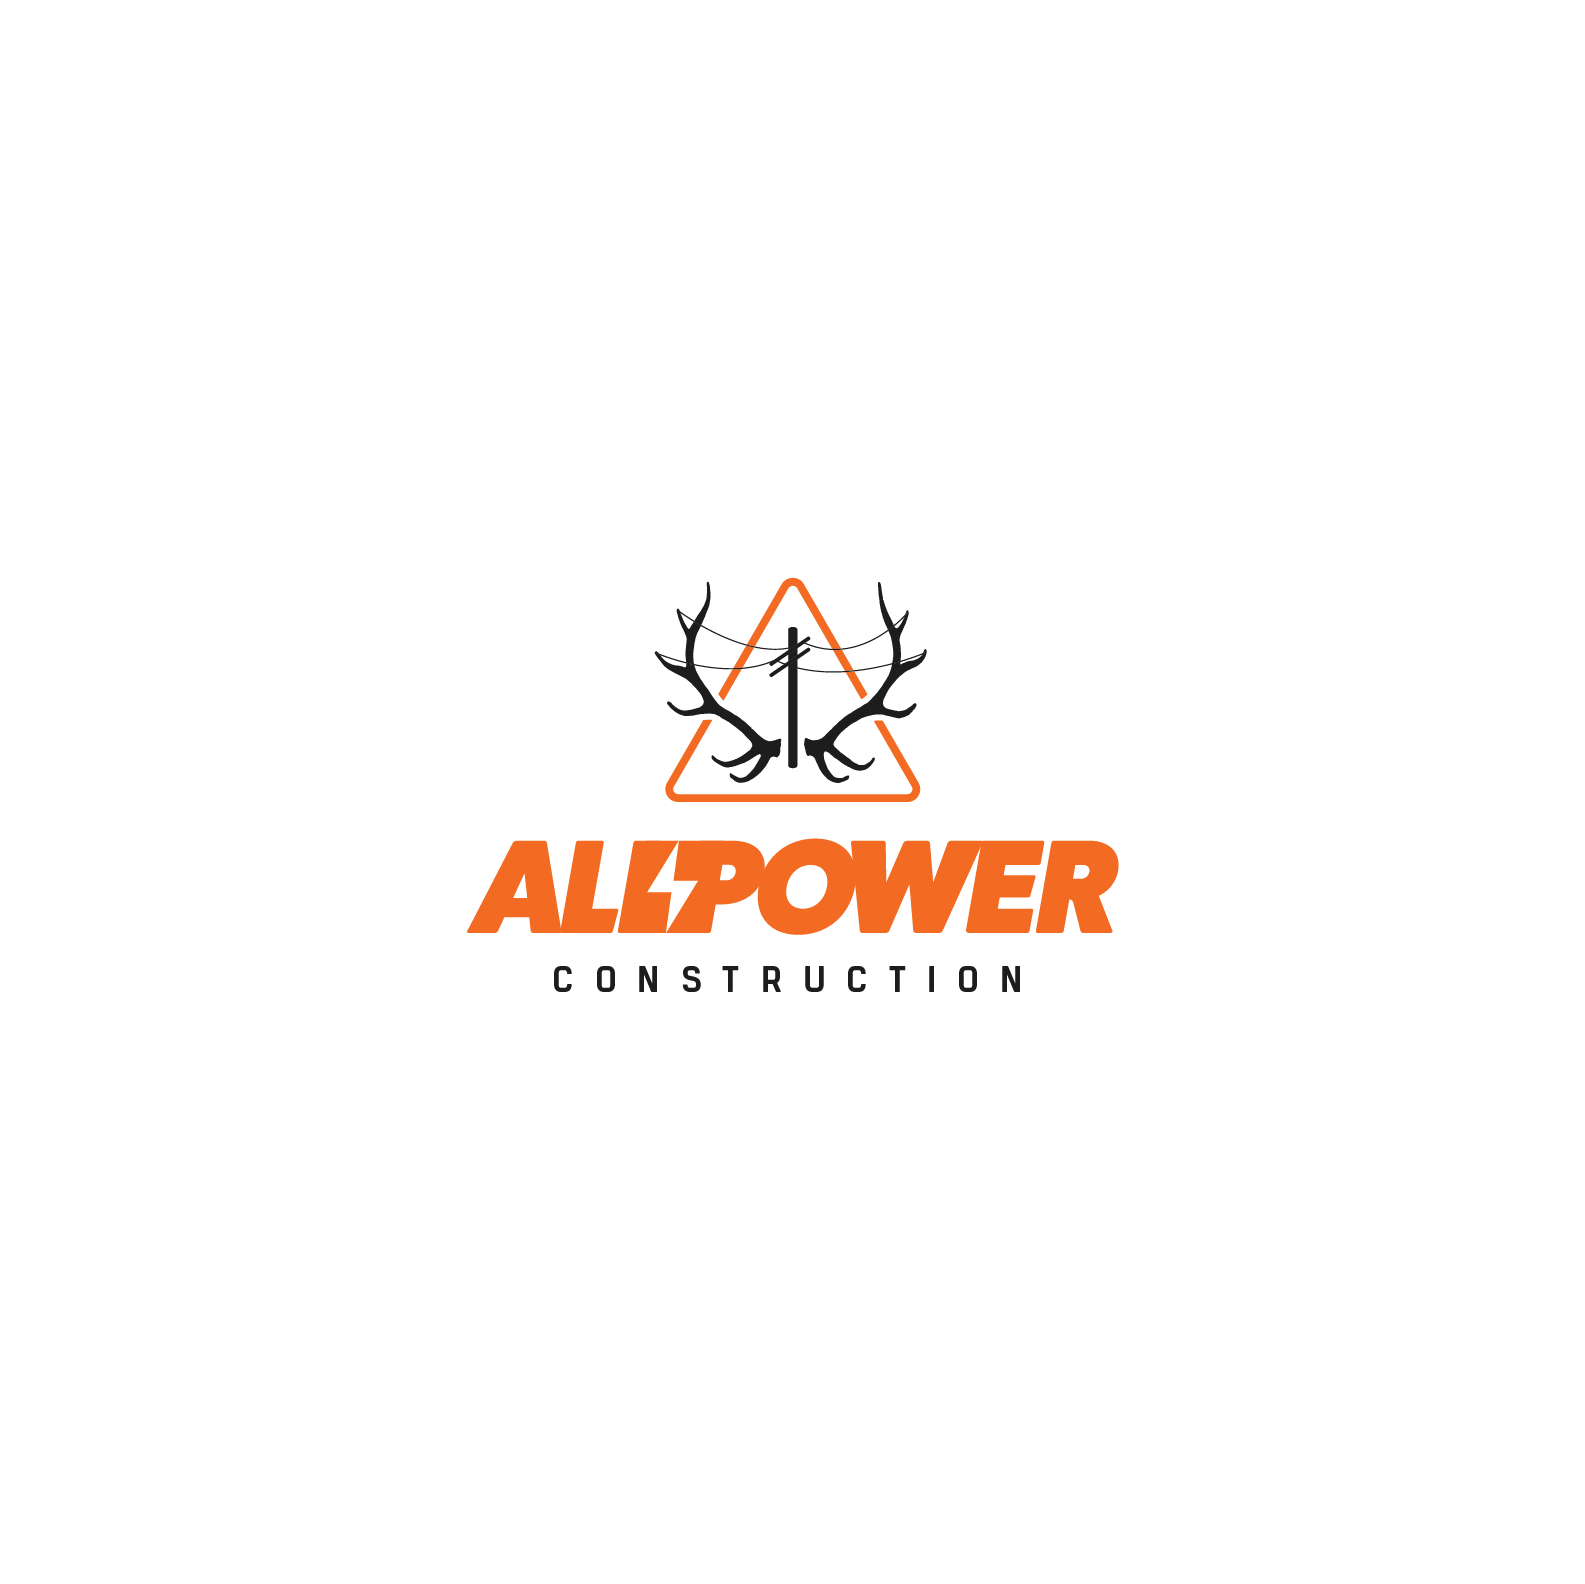 Logo_Allpower_construction